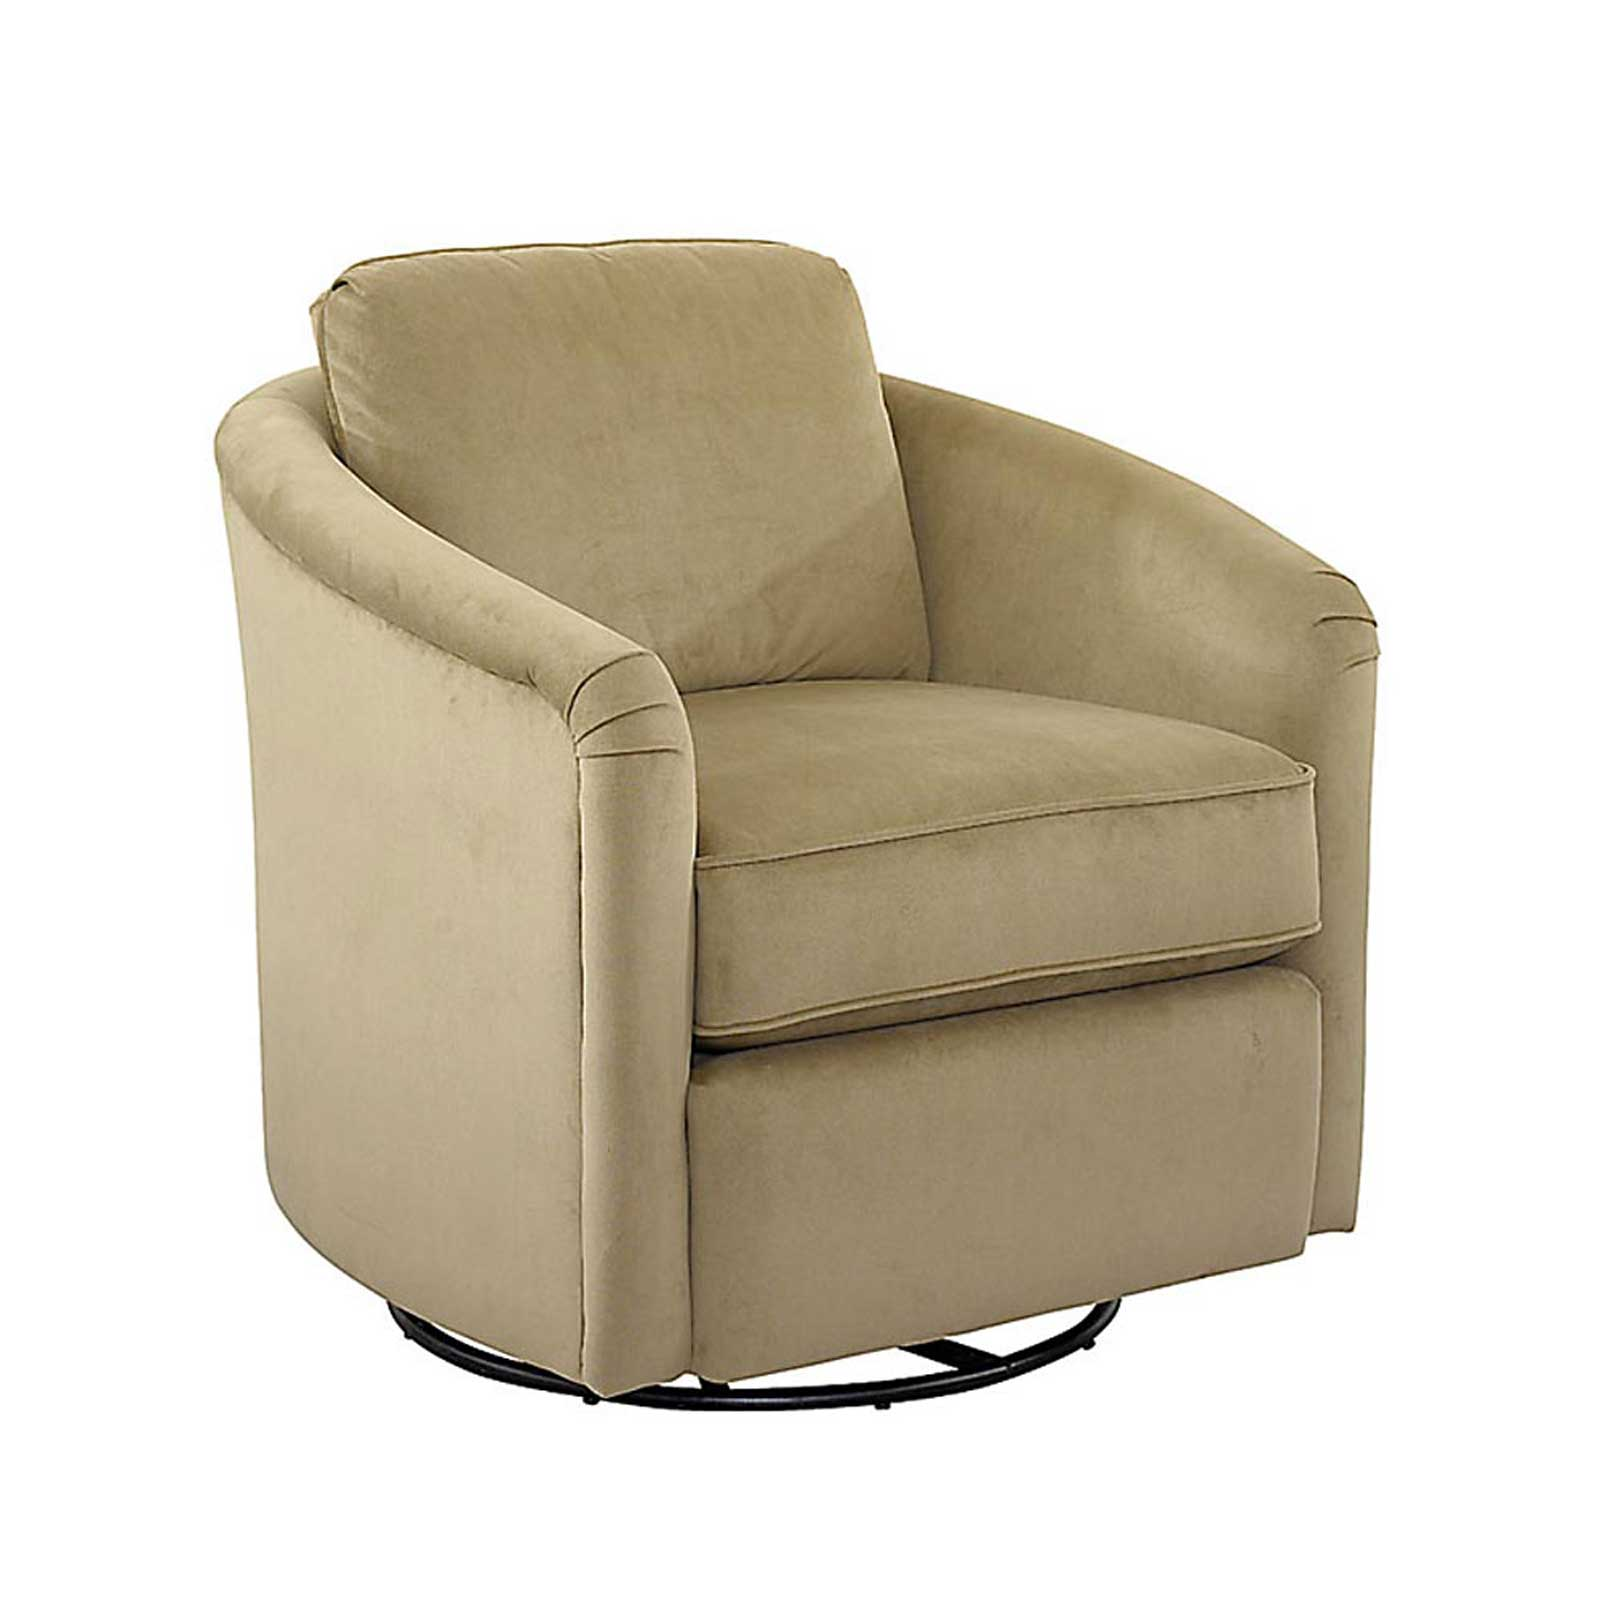 Traditional Upholstered Fabric Swivel Glider Tub Chair